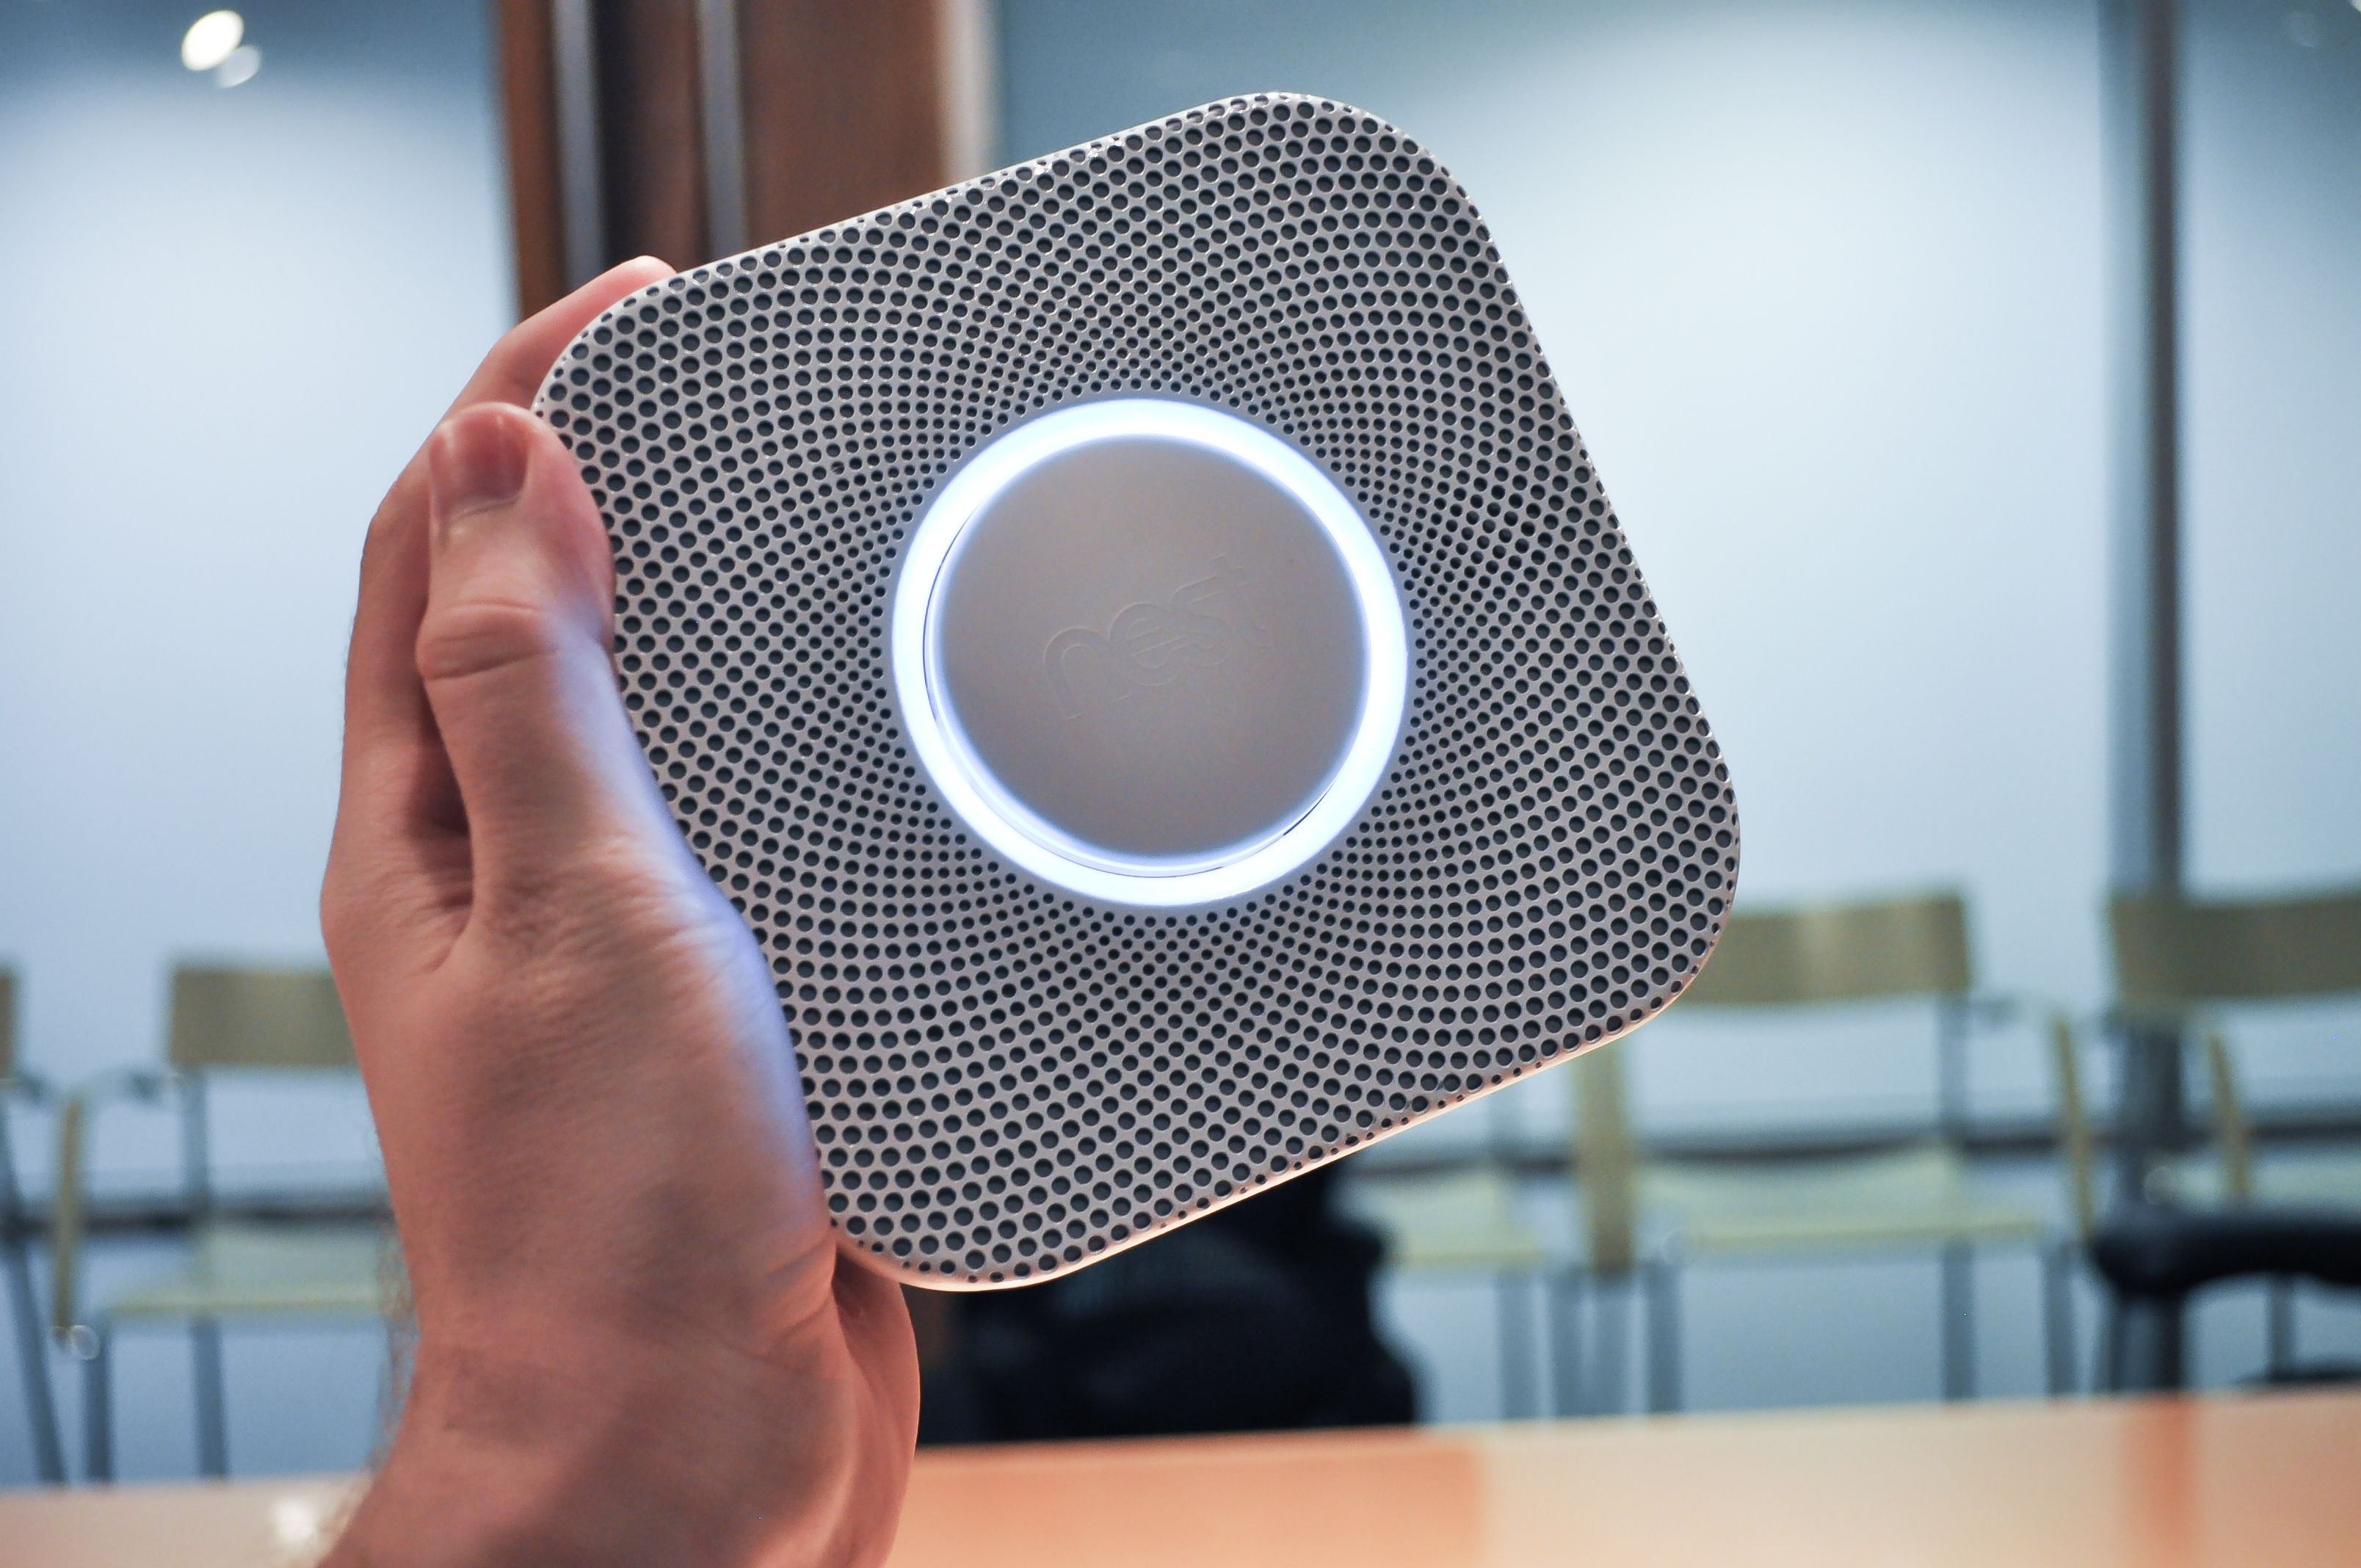 Nest Protect Is A $129 Smoke And Carbon Monoxide Detector That Takes ...